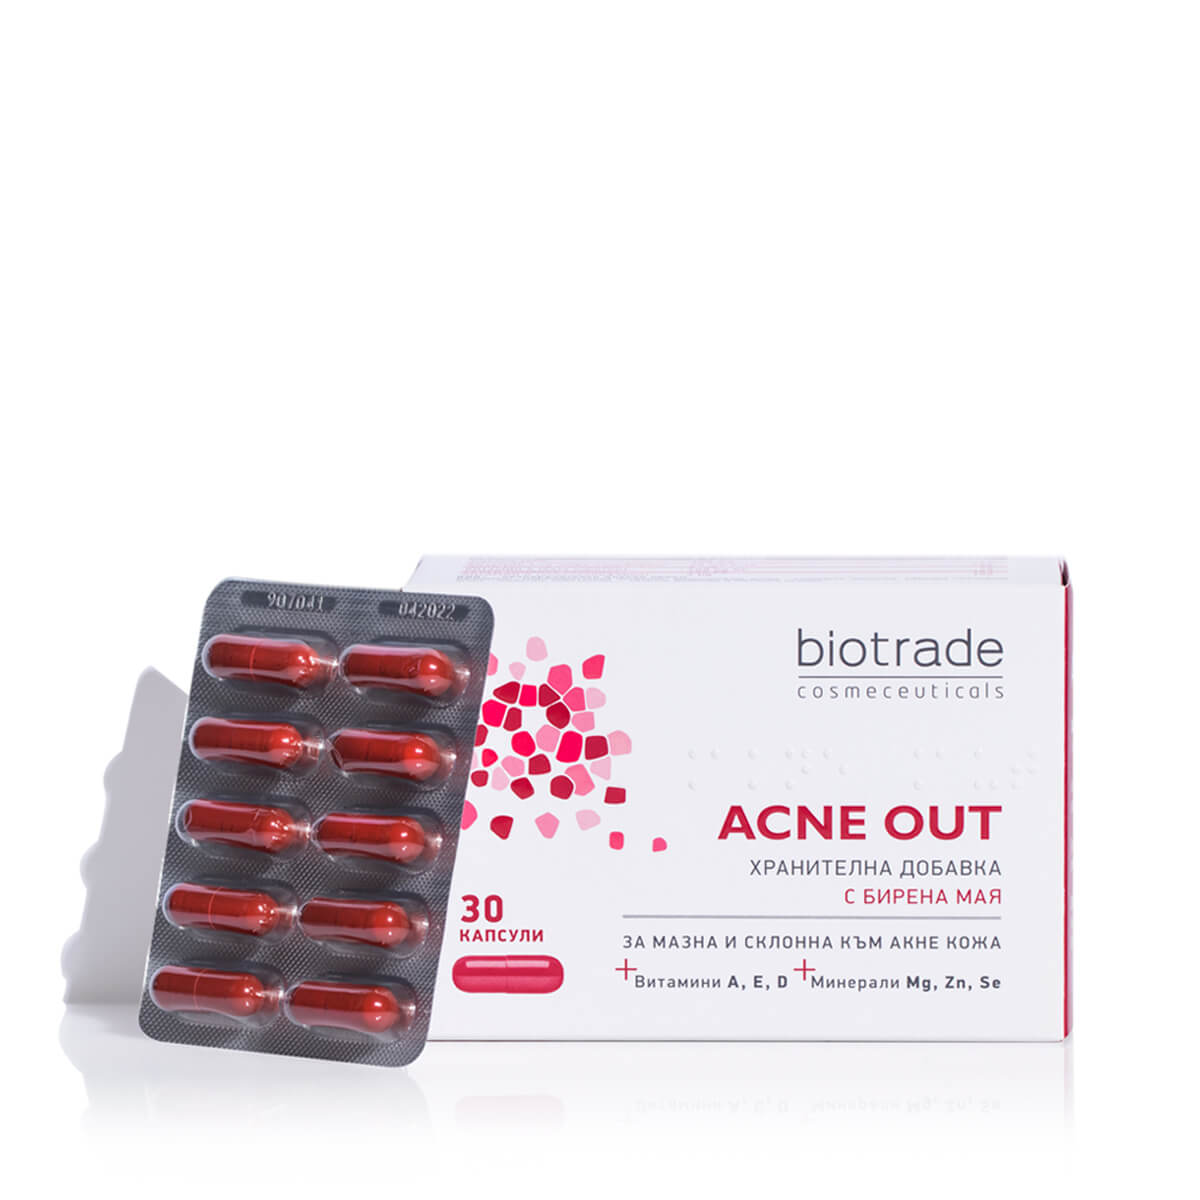 Acne Out supliment alimentar